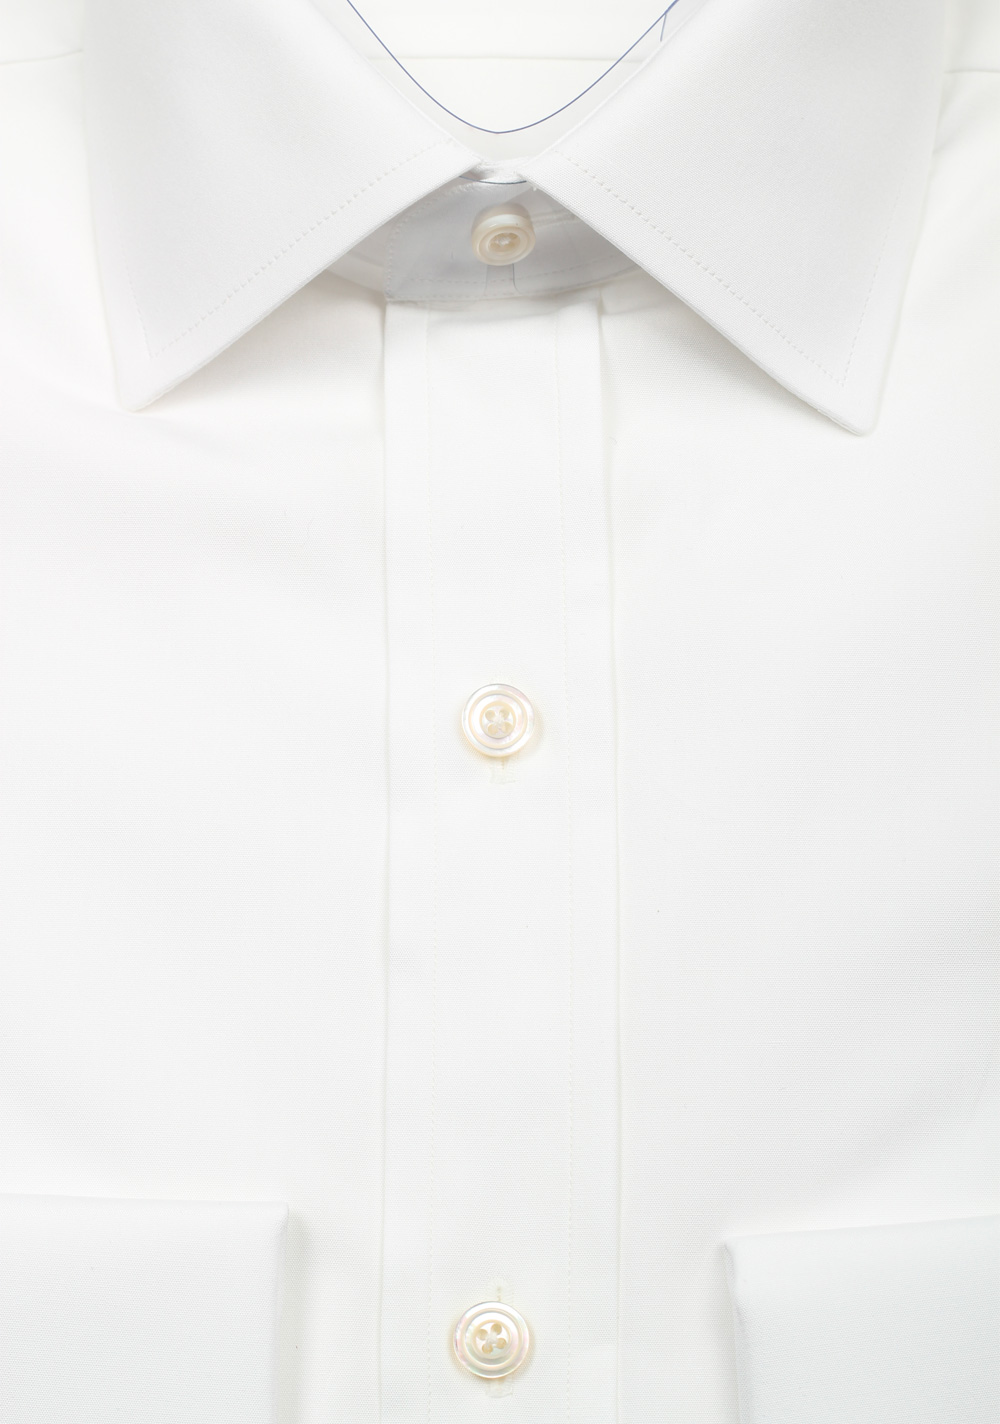 TOM FORD Solid White Dress Spread Shirt French Cuffs Size 38 / 15 U.S. Slim Fit | Costume Limité